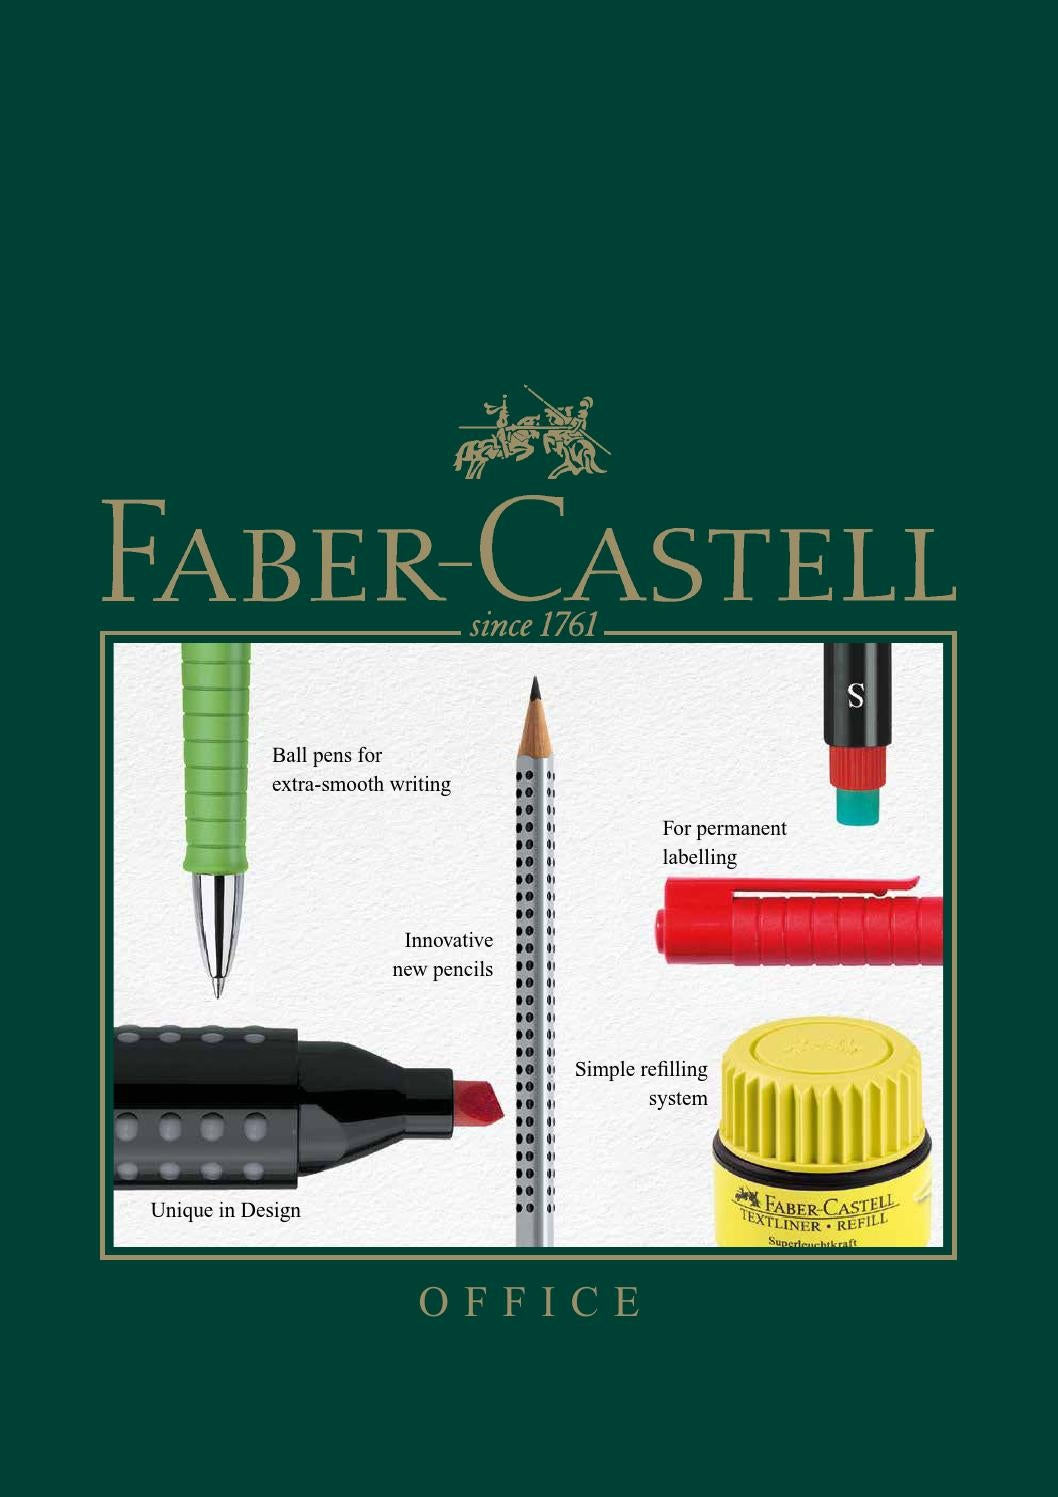 Faber Castell TK9400 Clutch Pencil Leads Pack of 10 2mm HB